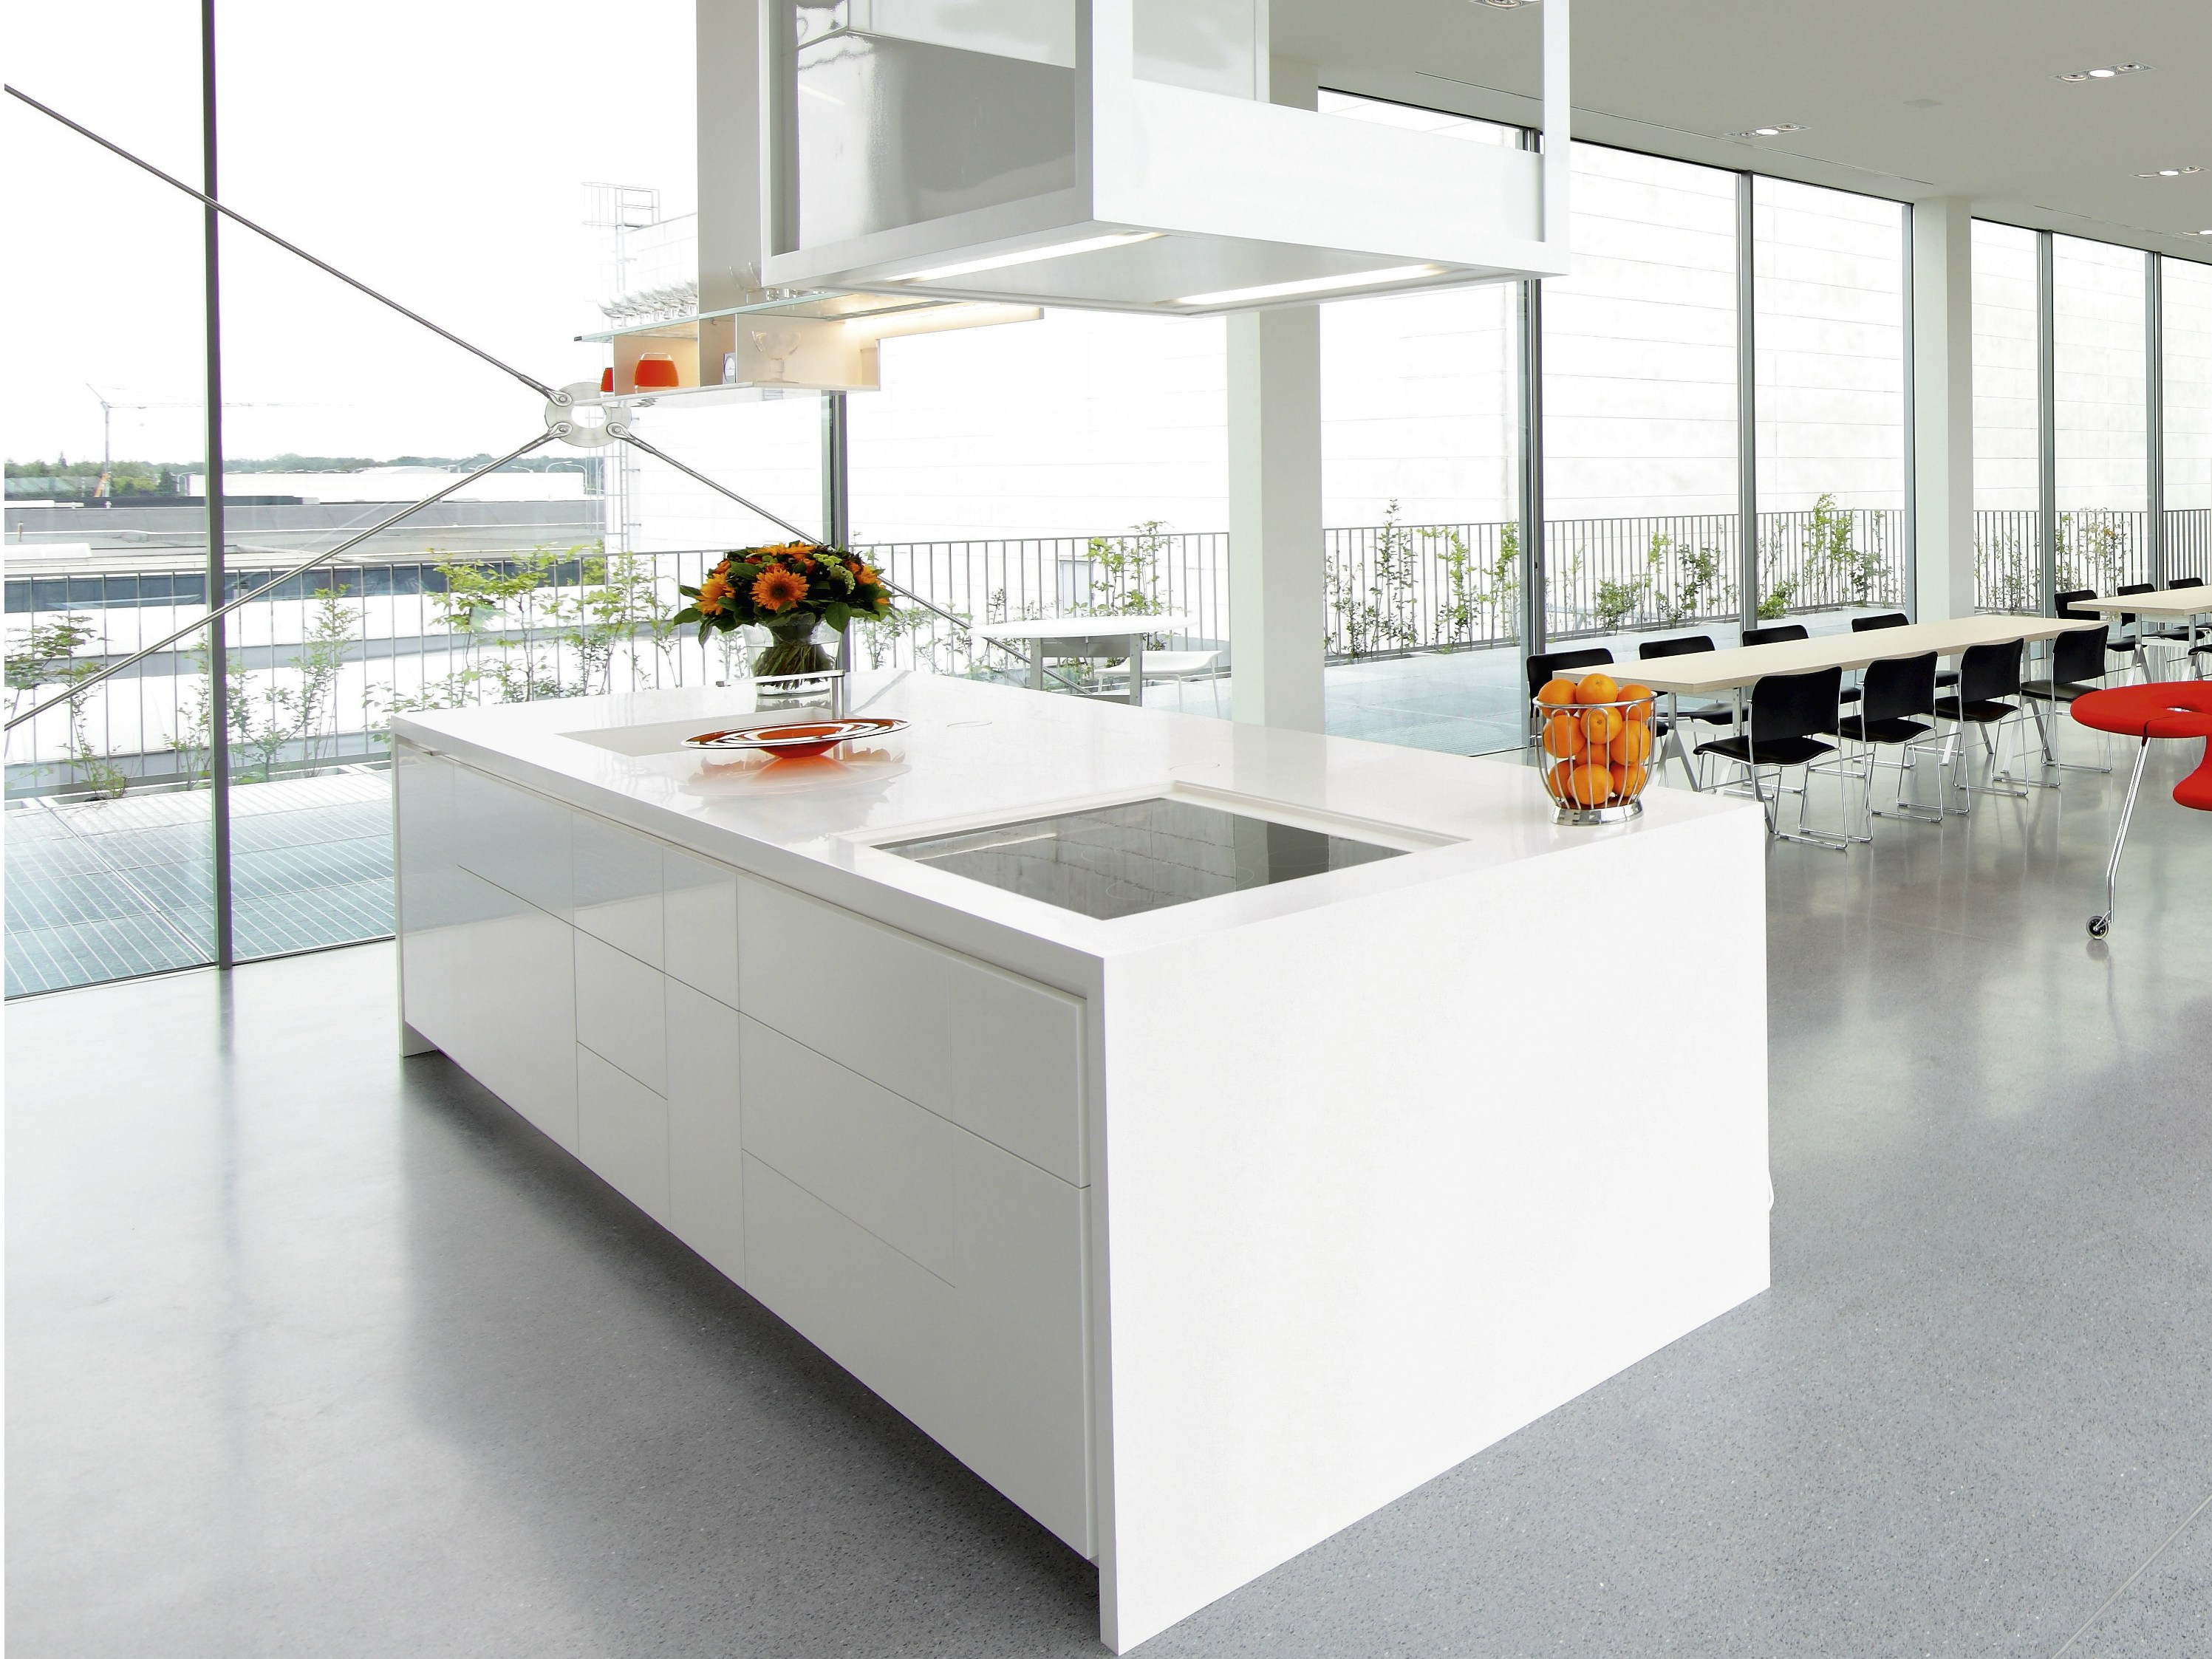 Arbeitsplatten Wiedenbrück Getacore Kitchen By Getacore By Westag And Getalit Design